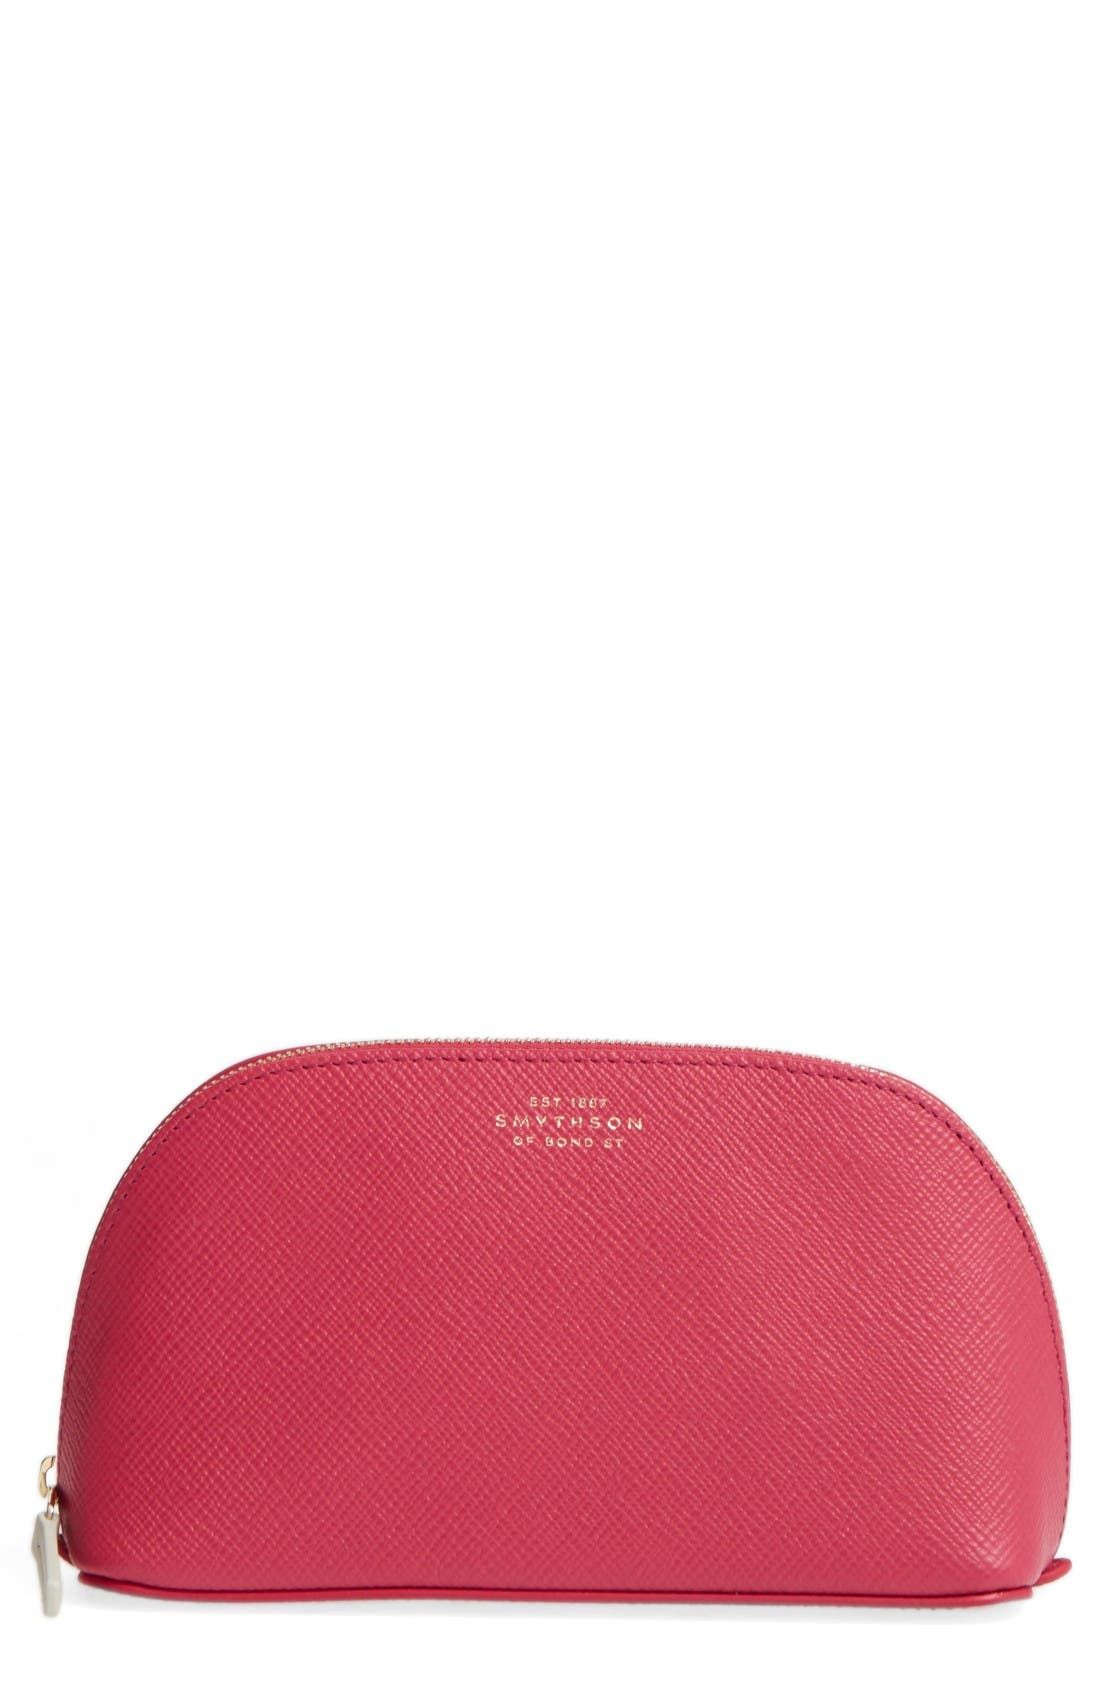 Smythson Small Calfskin Leather Cosmetics Case